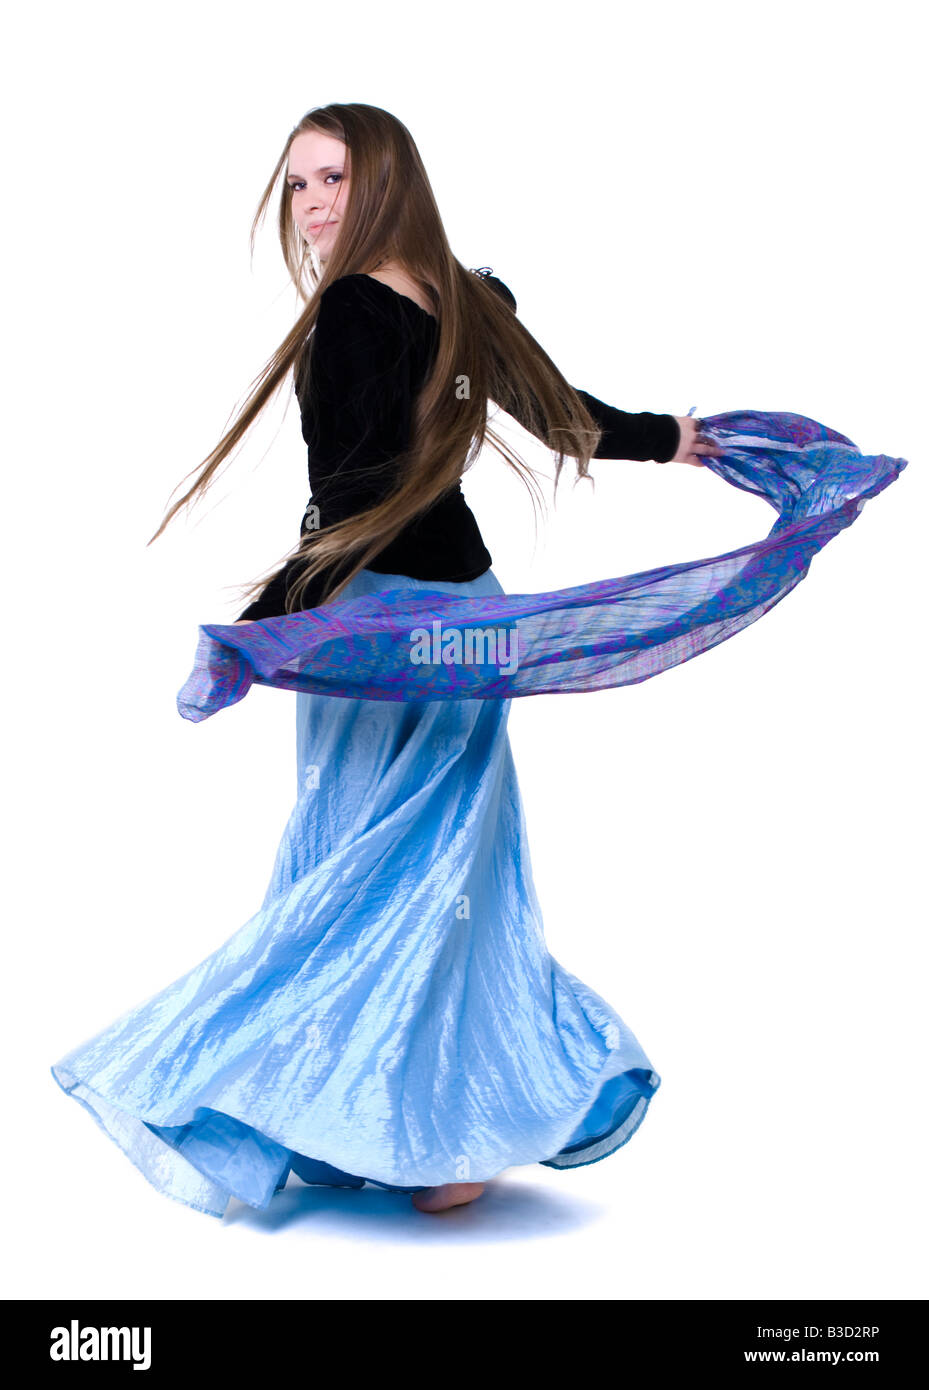 Young woman dancing against white background - Stock Image